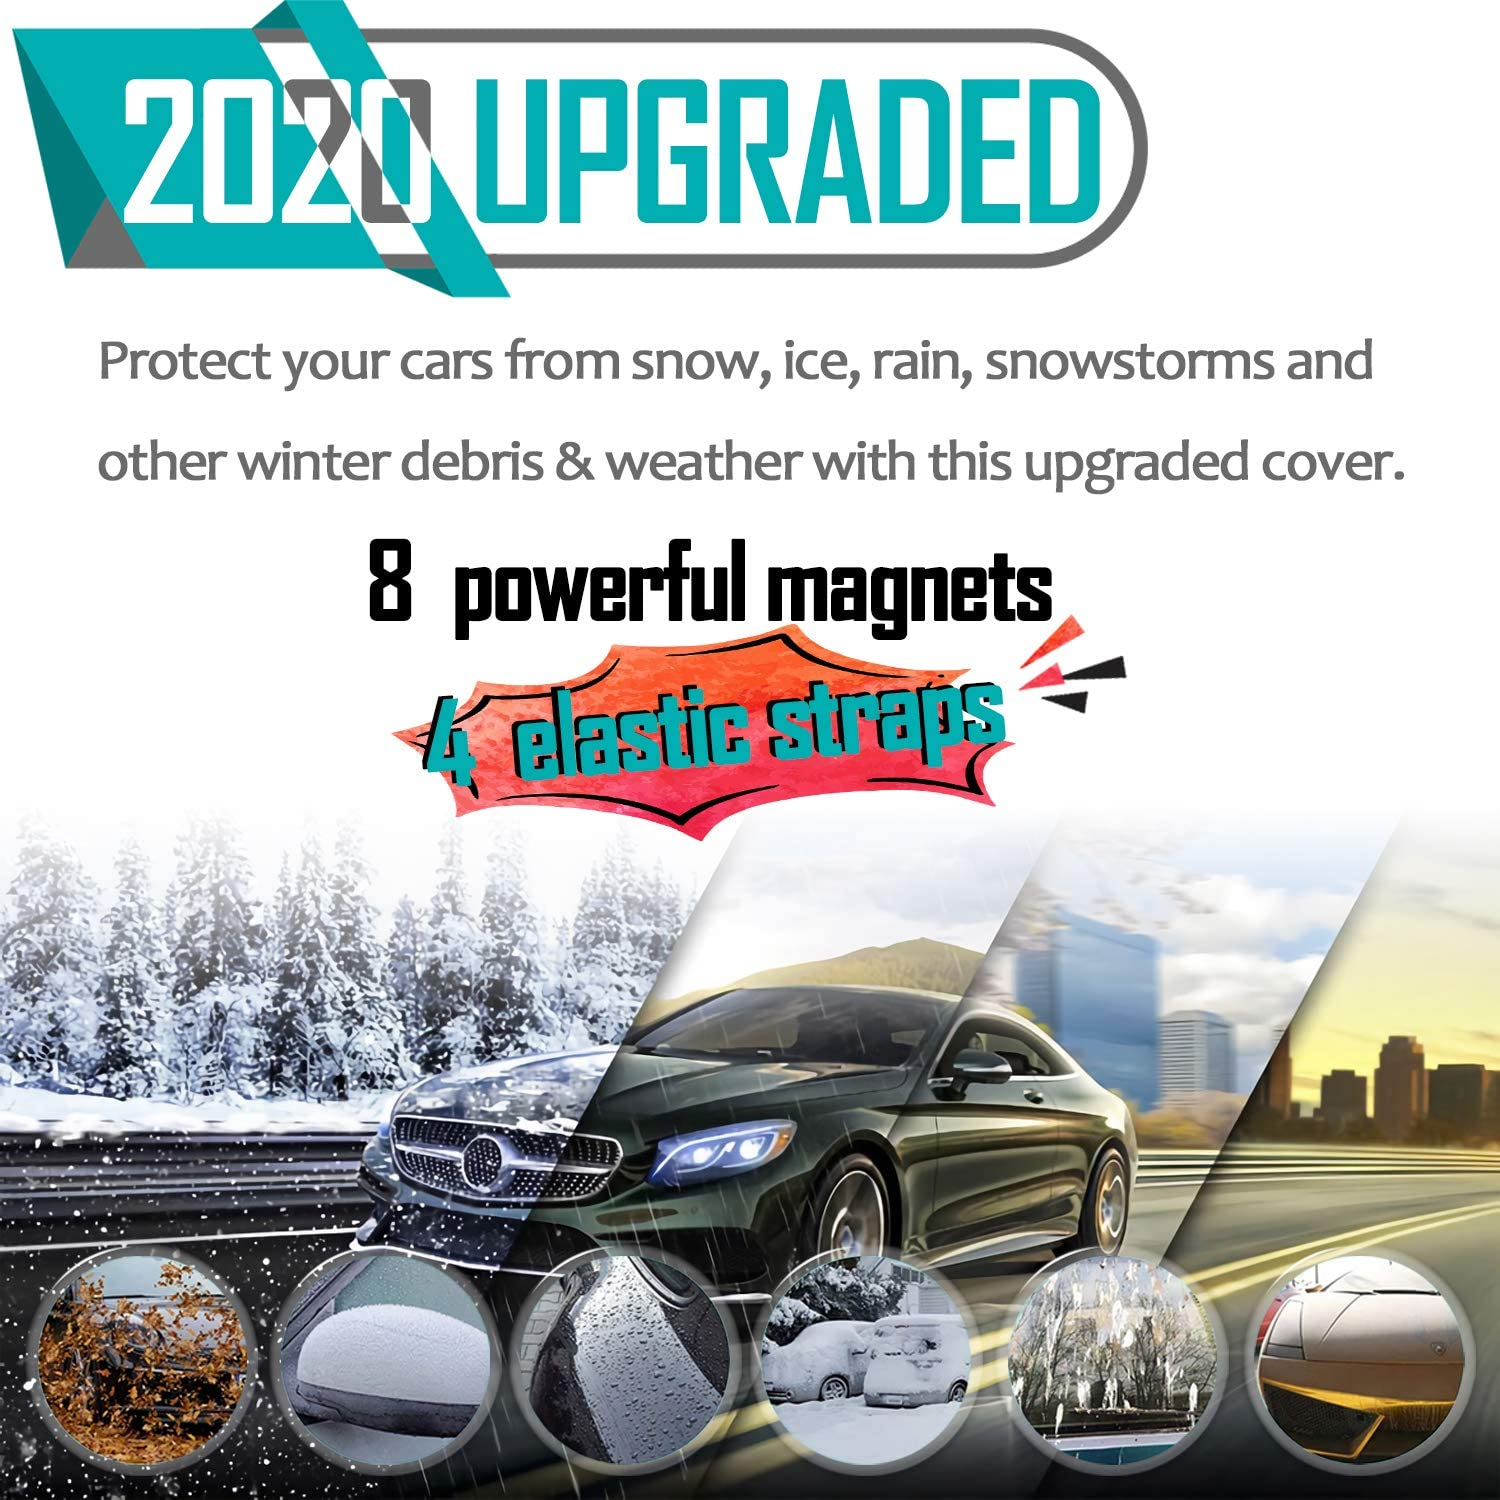 Windshield Snow Cover Magnetic Large Car Covers with 3 Layovers with 3 Layers Material Protection- Fit Any Car Keeps Ice /& Snow Off 2020 Newest Straps /& Magnets Double Fixed Design Windproof Outdoor Car Snow Covers